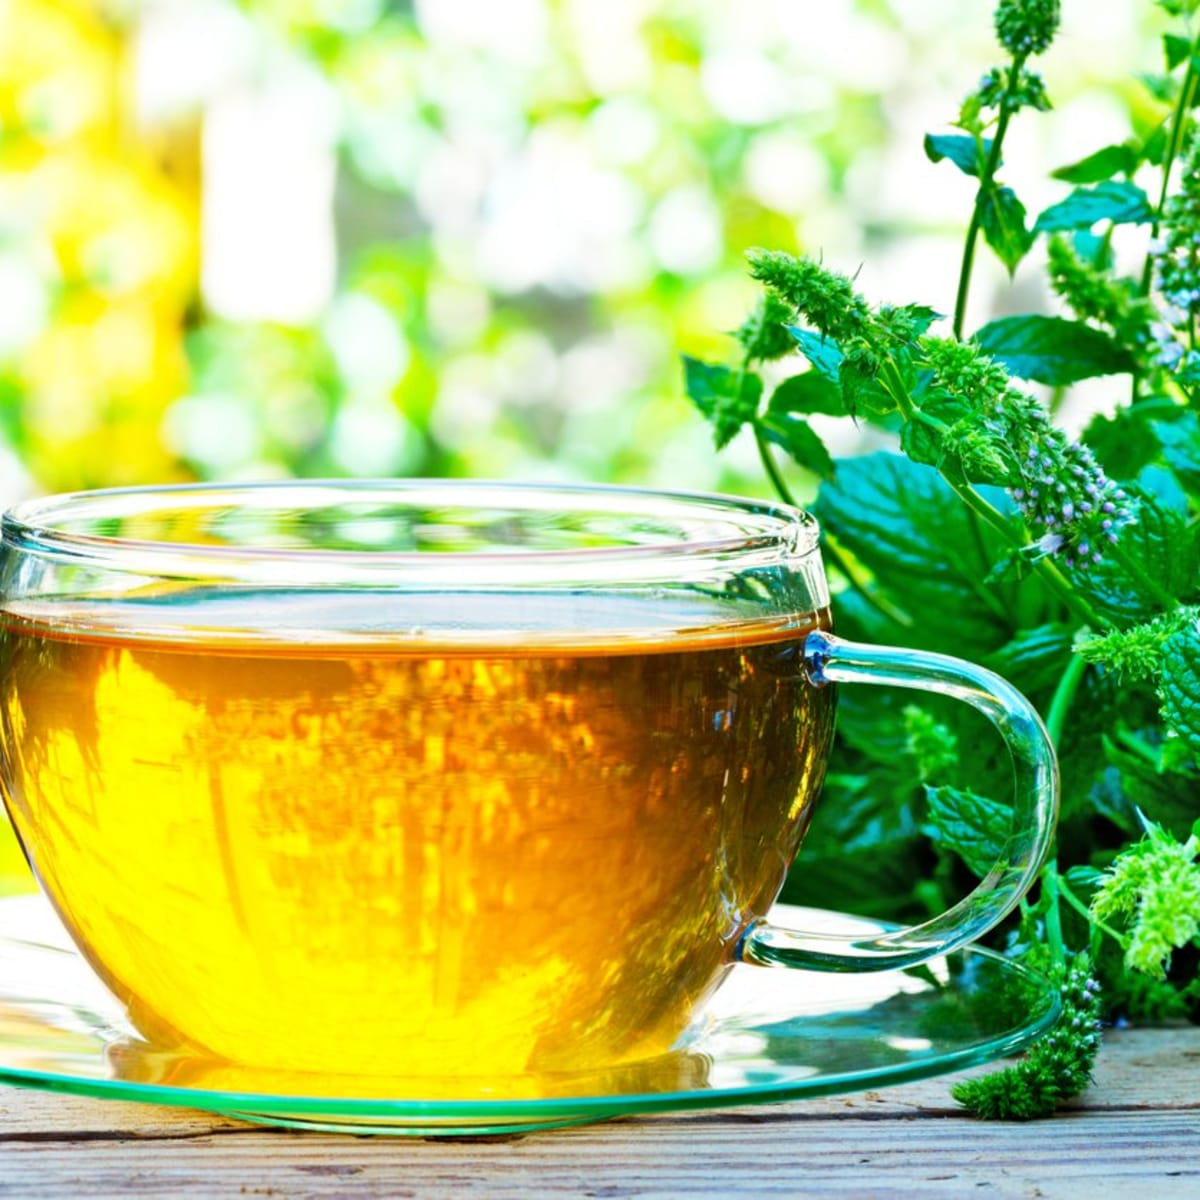 Tea to support your immune system